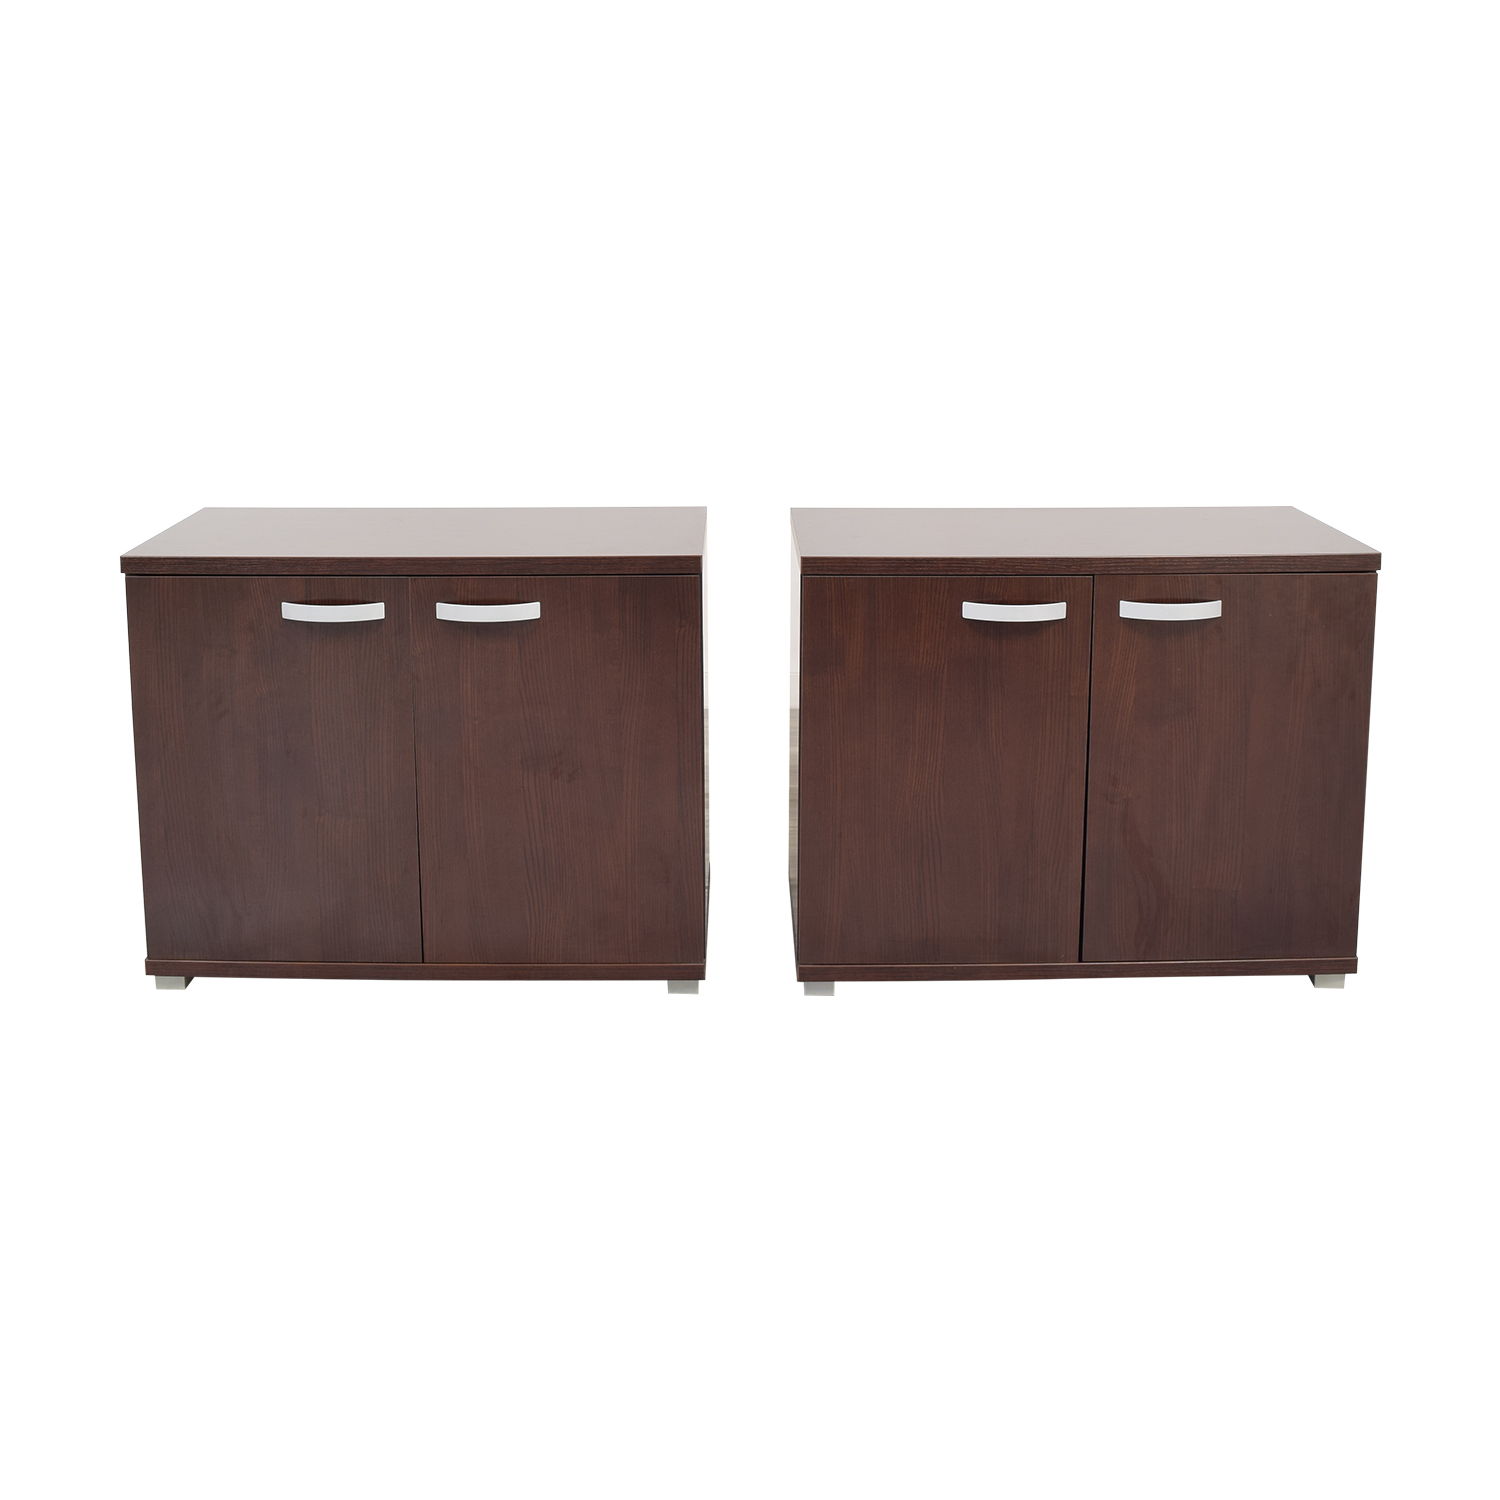 West Elm West Elm Storage Cabinets coupon